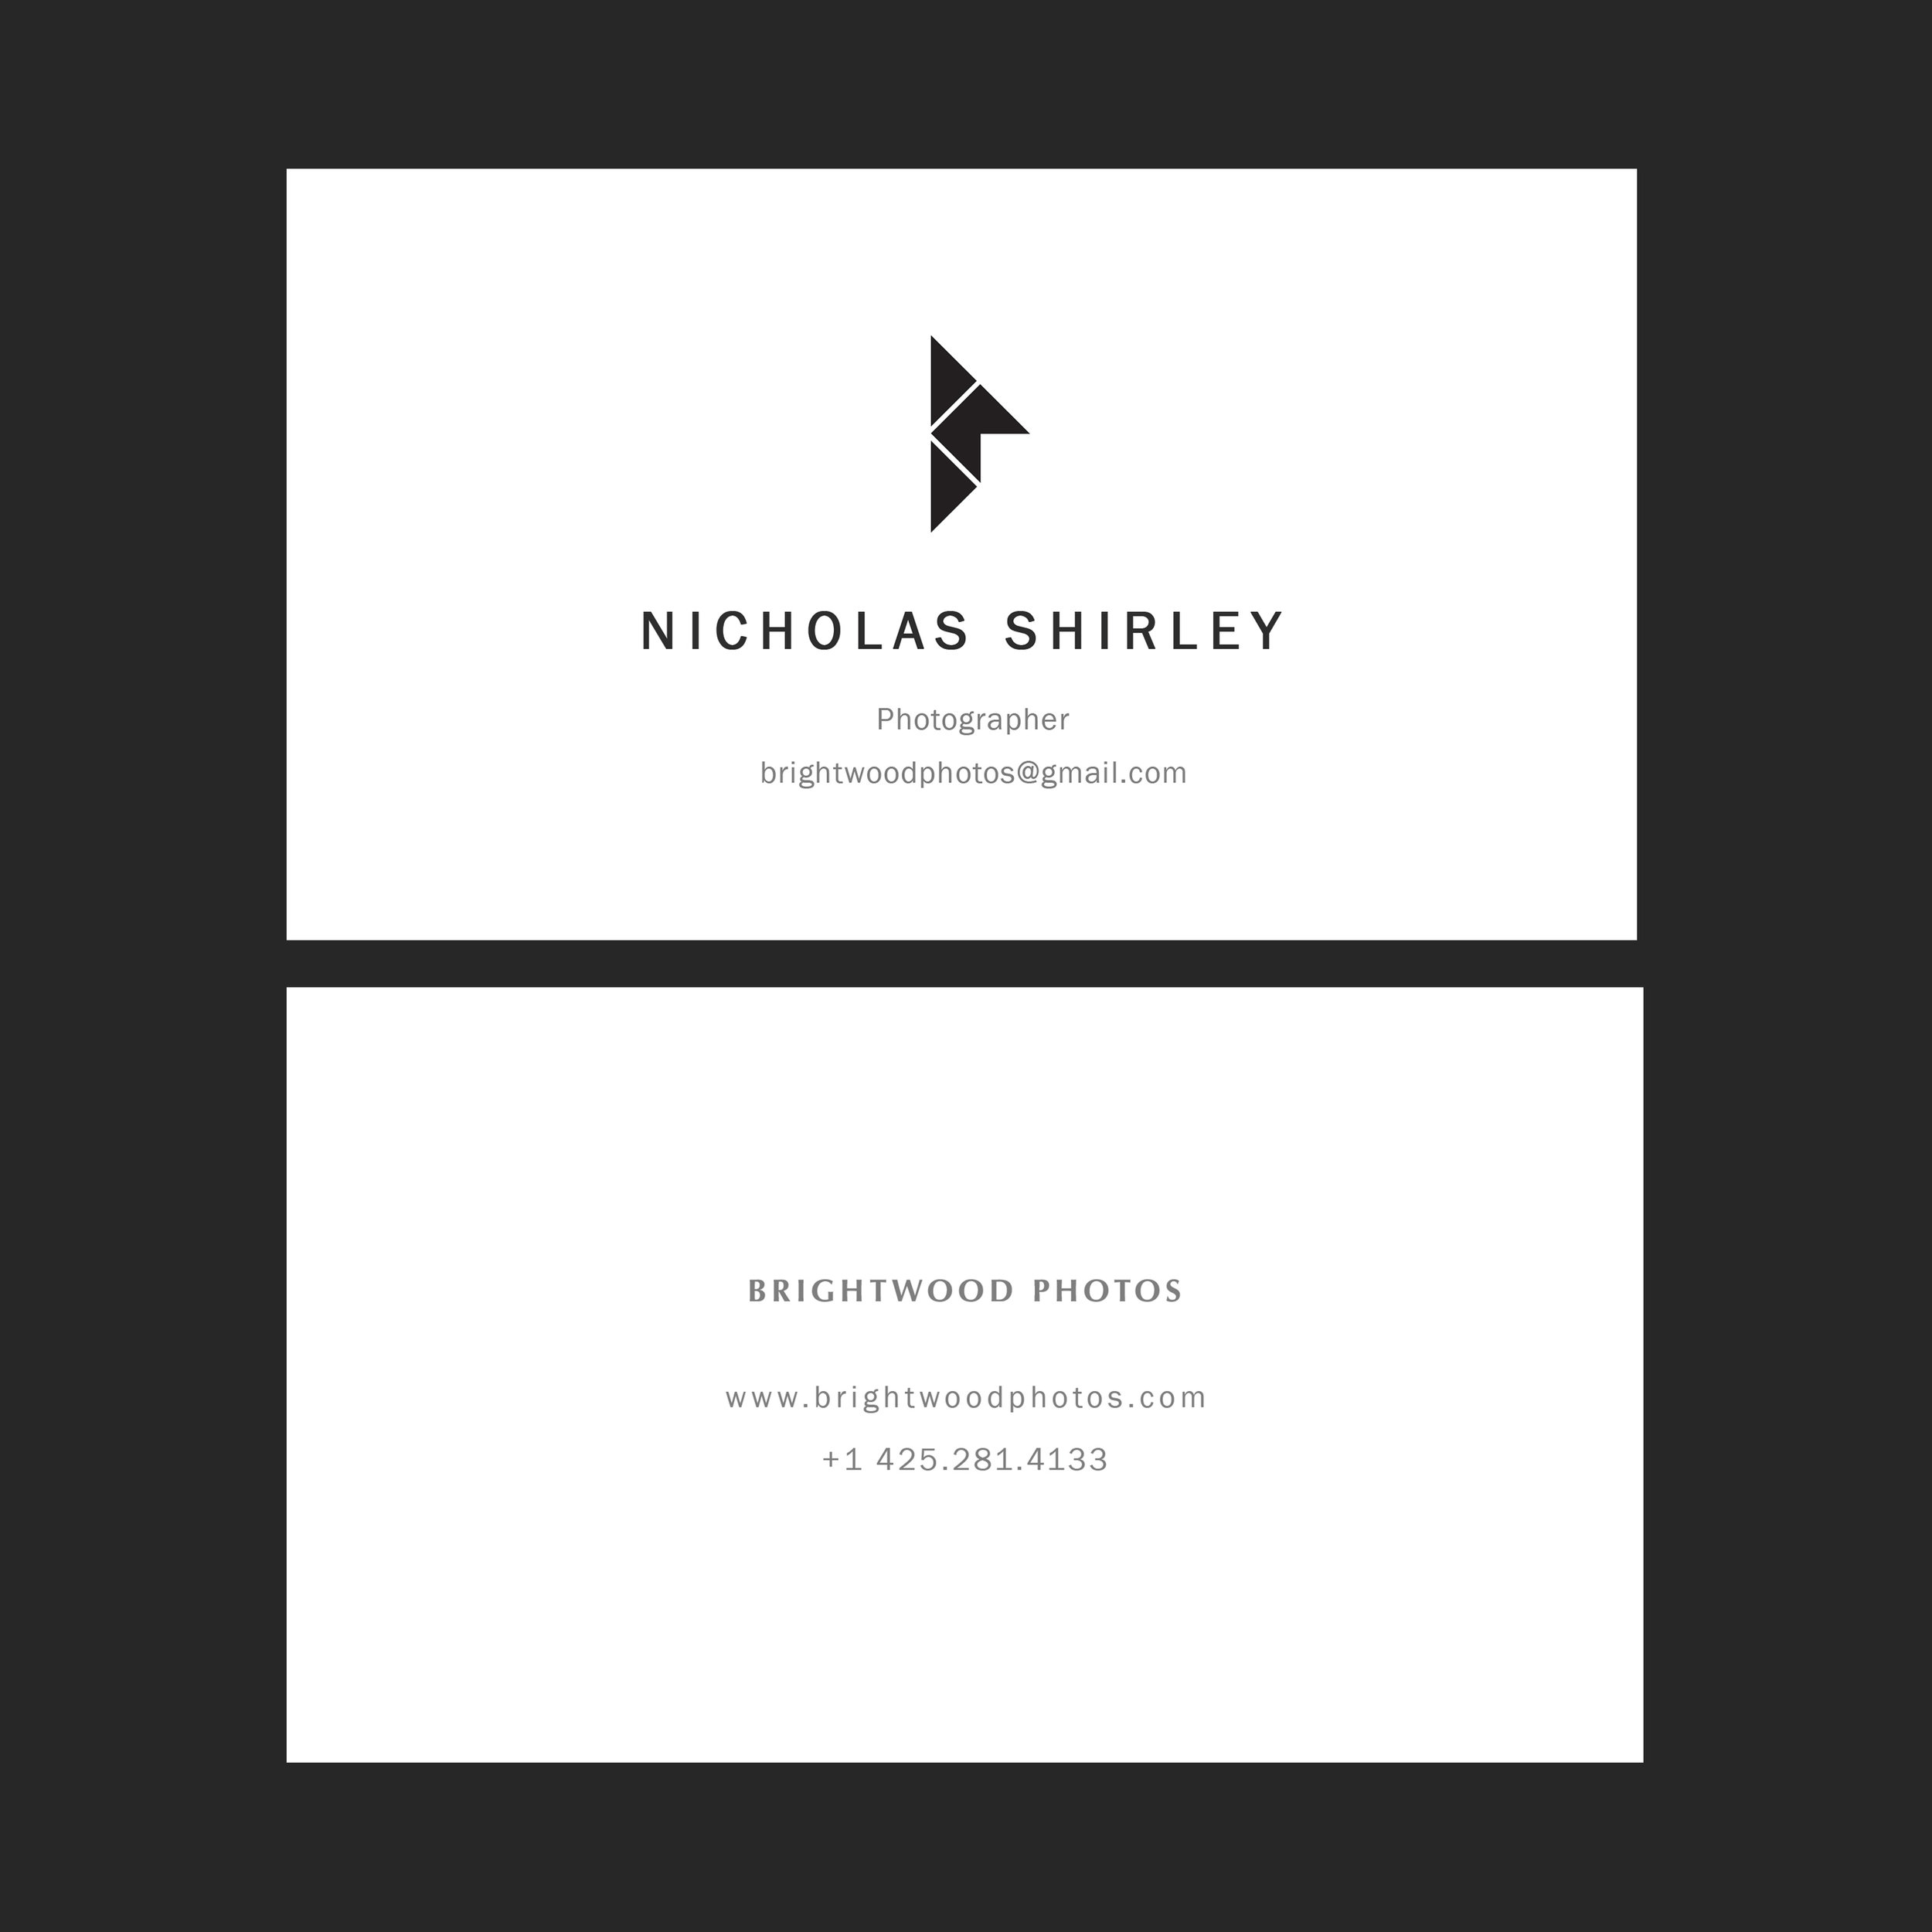 NS-business card mockup.jpg